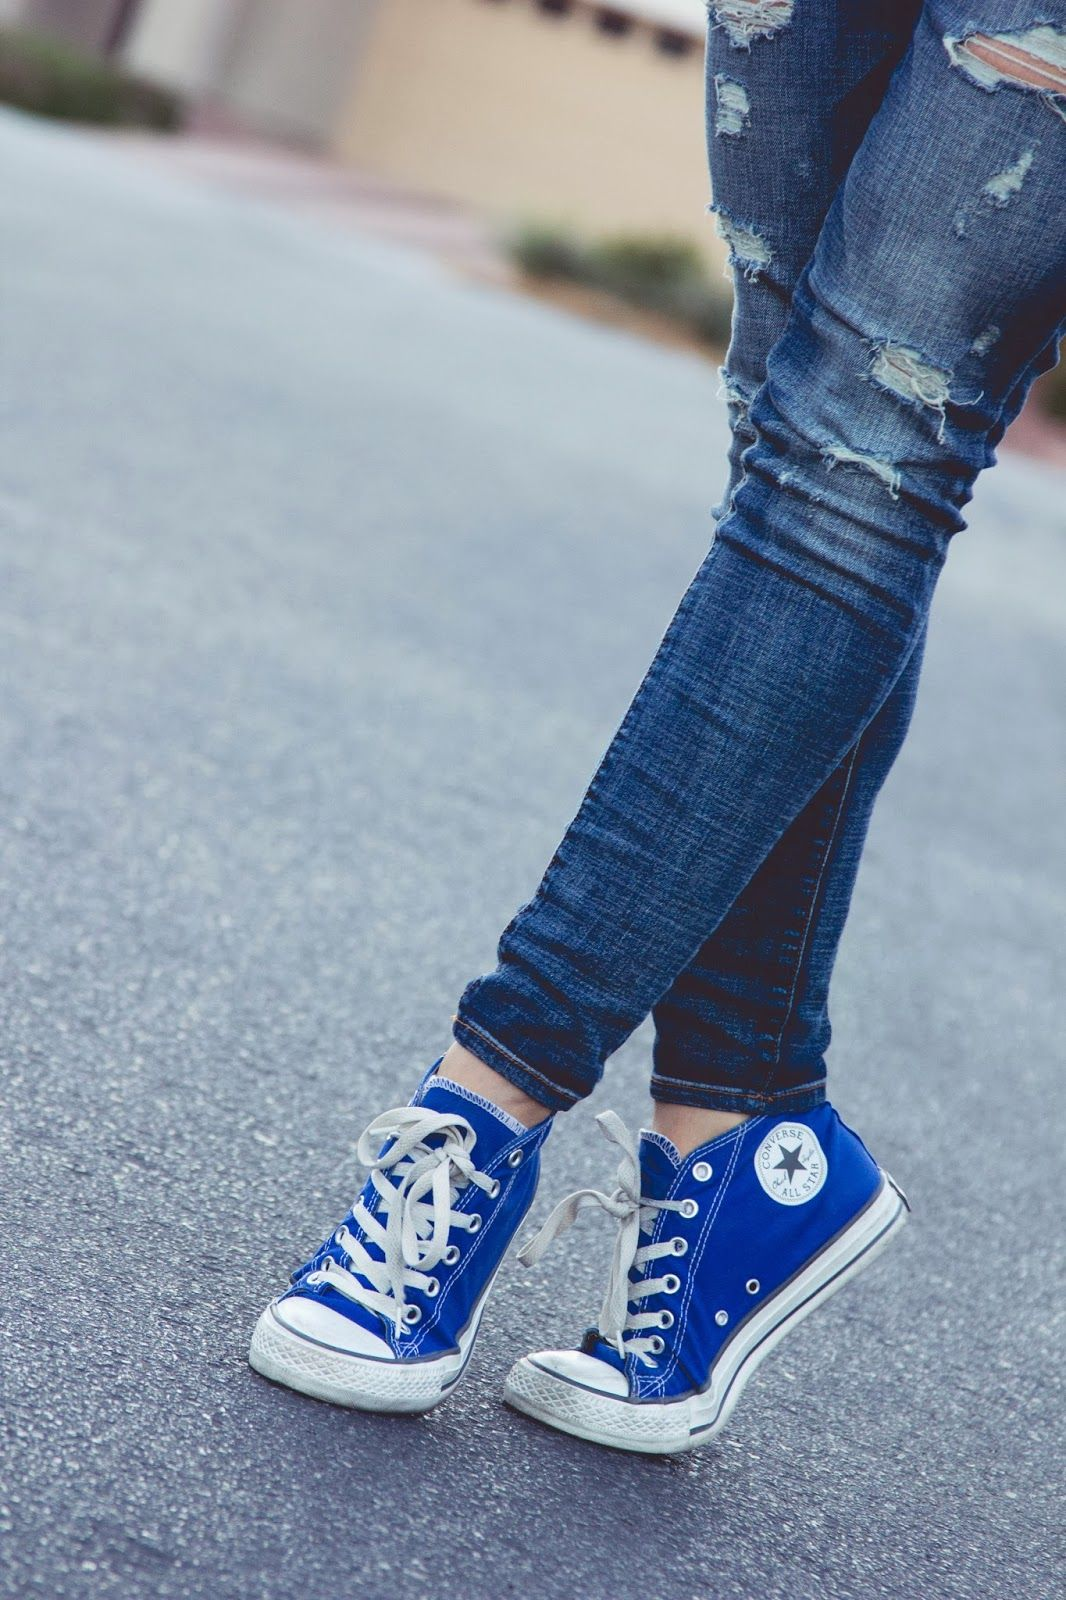 e542a519d37e Love the blue! Wearing these on the blog today!  chucks  Marshalls   fabfound  myfavoritecolorisblue